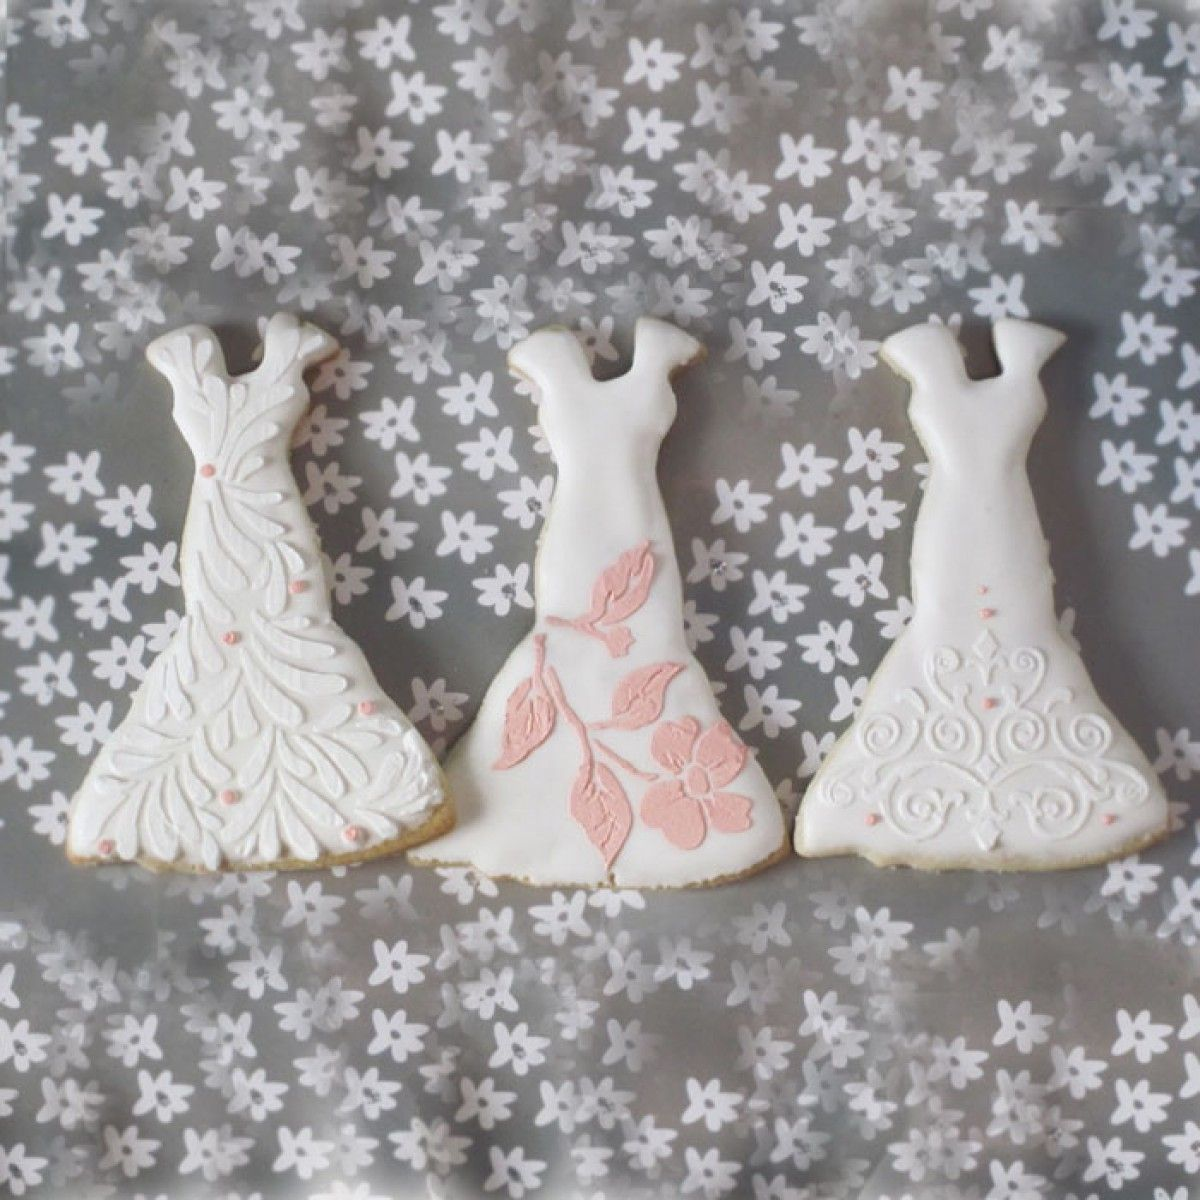 House Cookie Cutters and Stencil | ... Gumpaste & Cookie Cutters ...